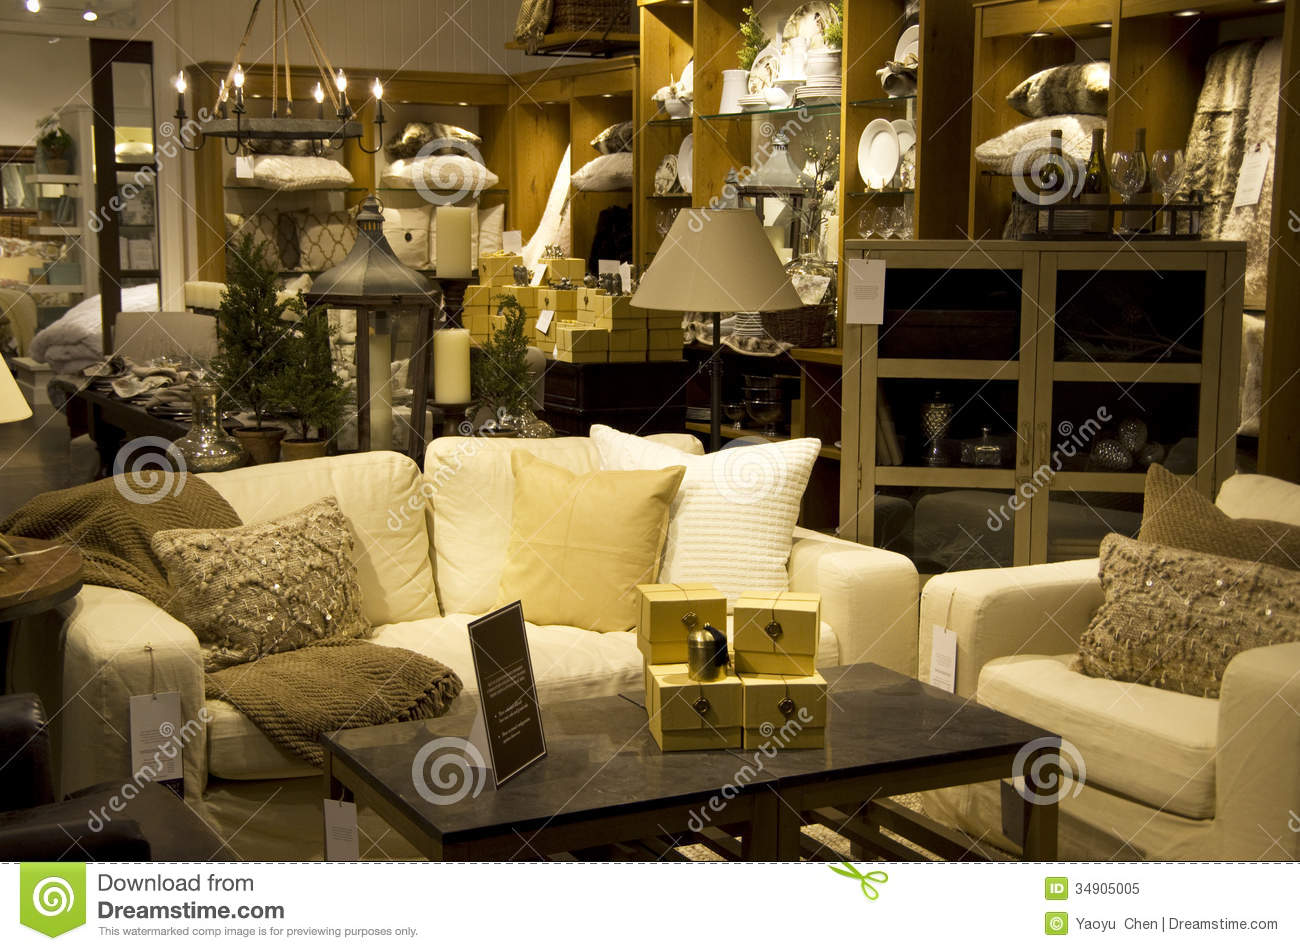 Home Decor Photos Free sign home of the free because of the brave Luxury Furniture Home Decor Store Royalty Free Stock Photo Image